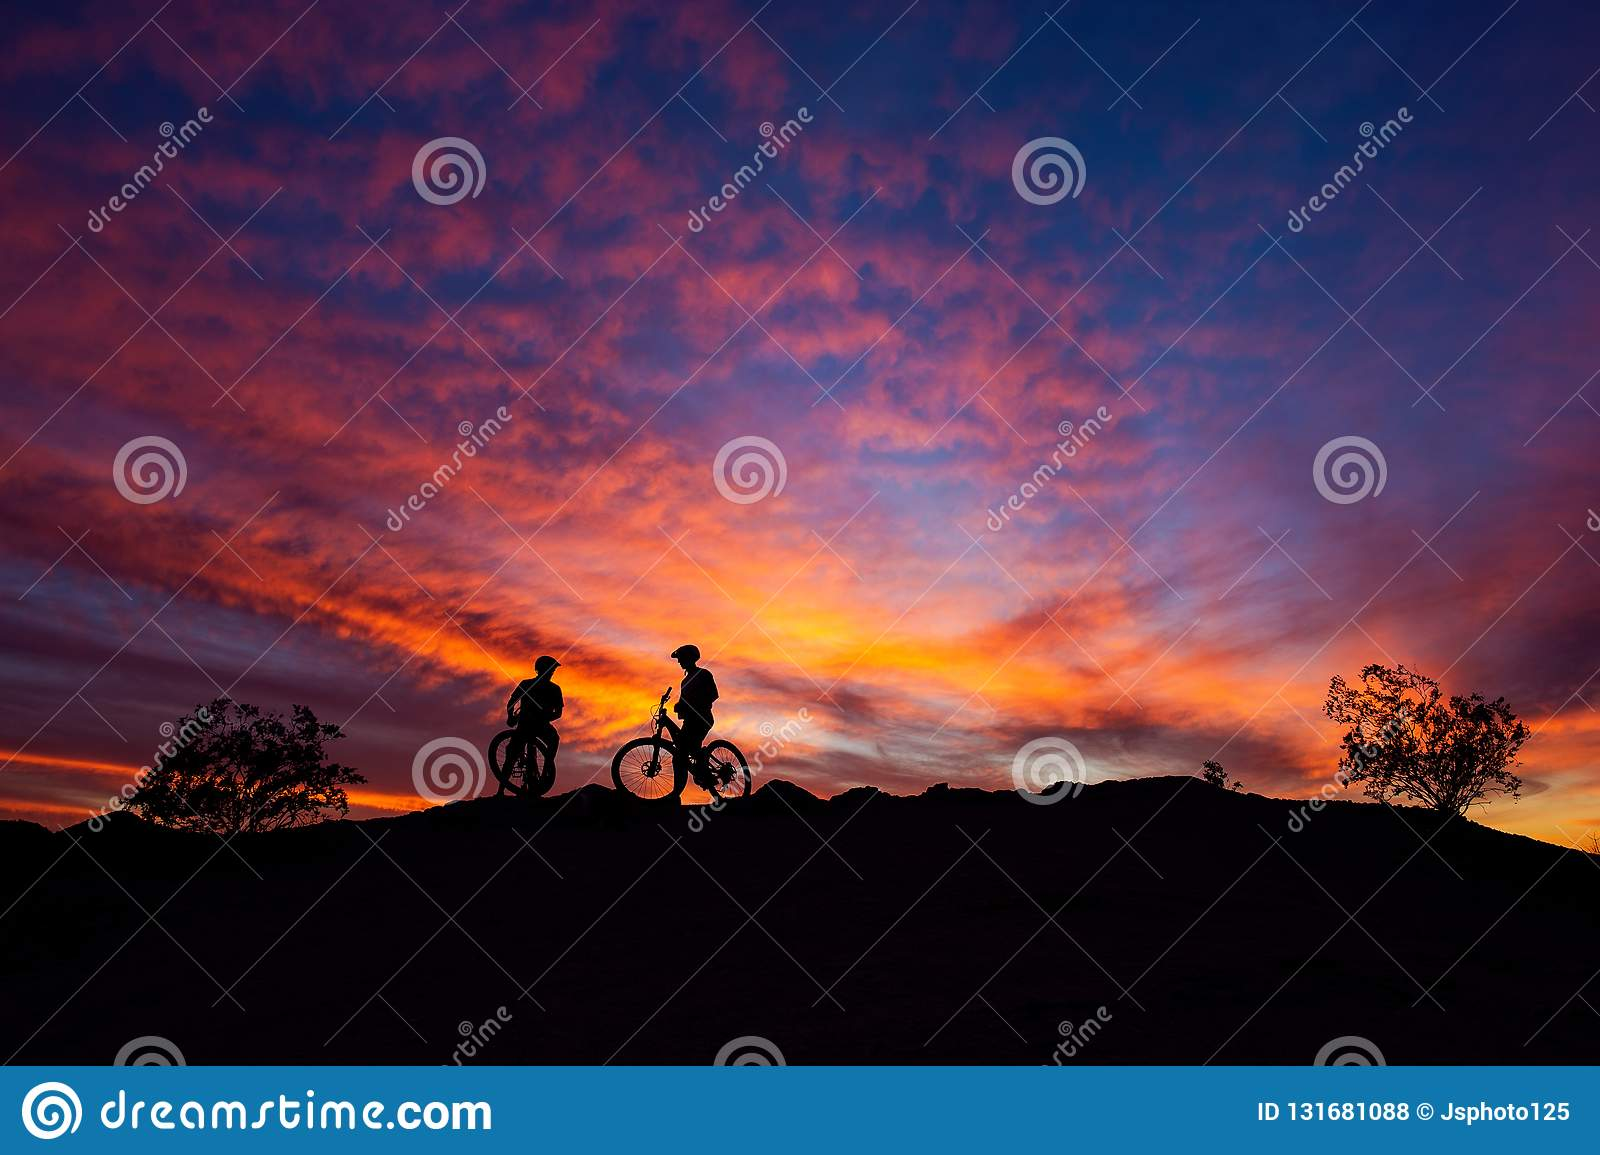 Mountain bikers silhouetted against a colorful sunset sky in South Mountain Park, Phoenix, Arizona.